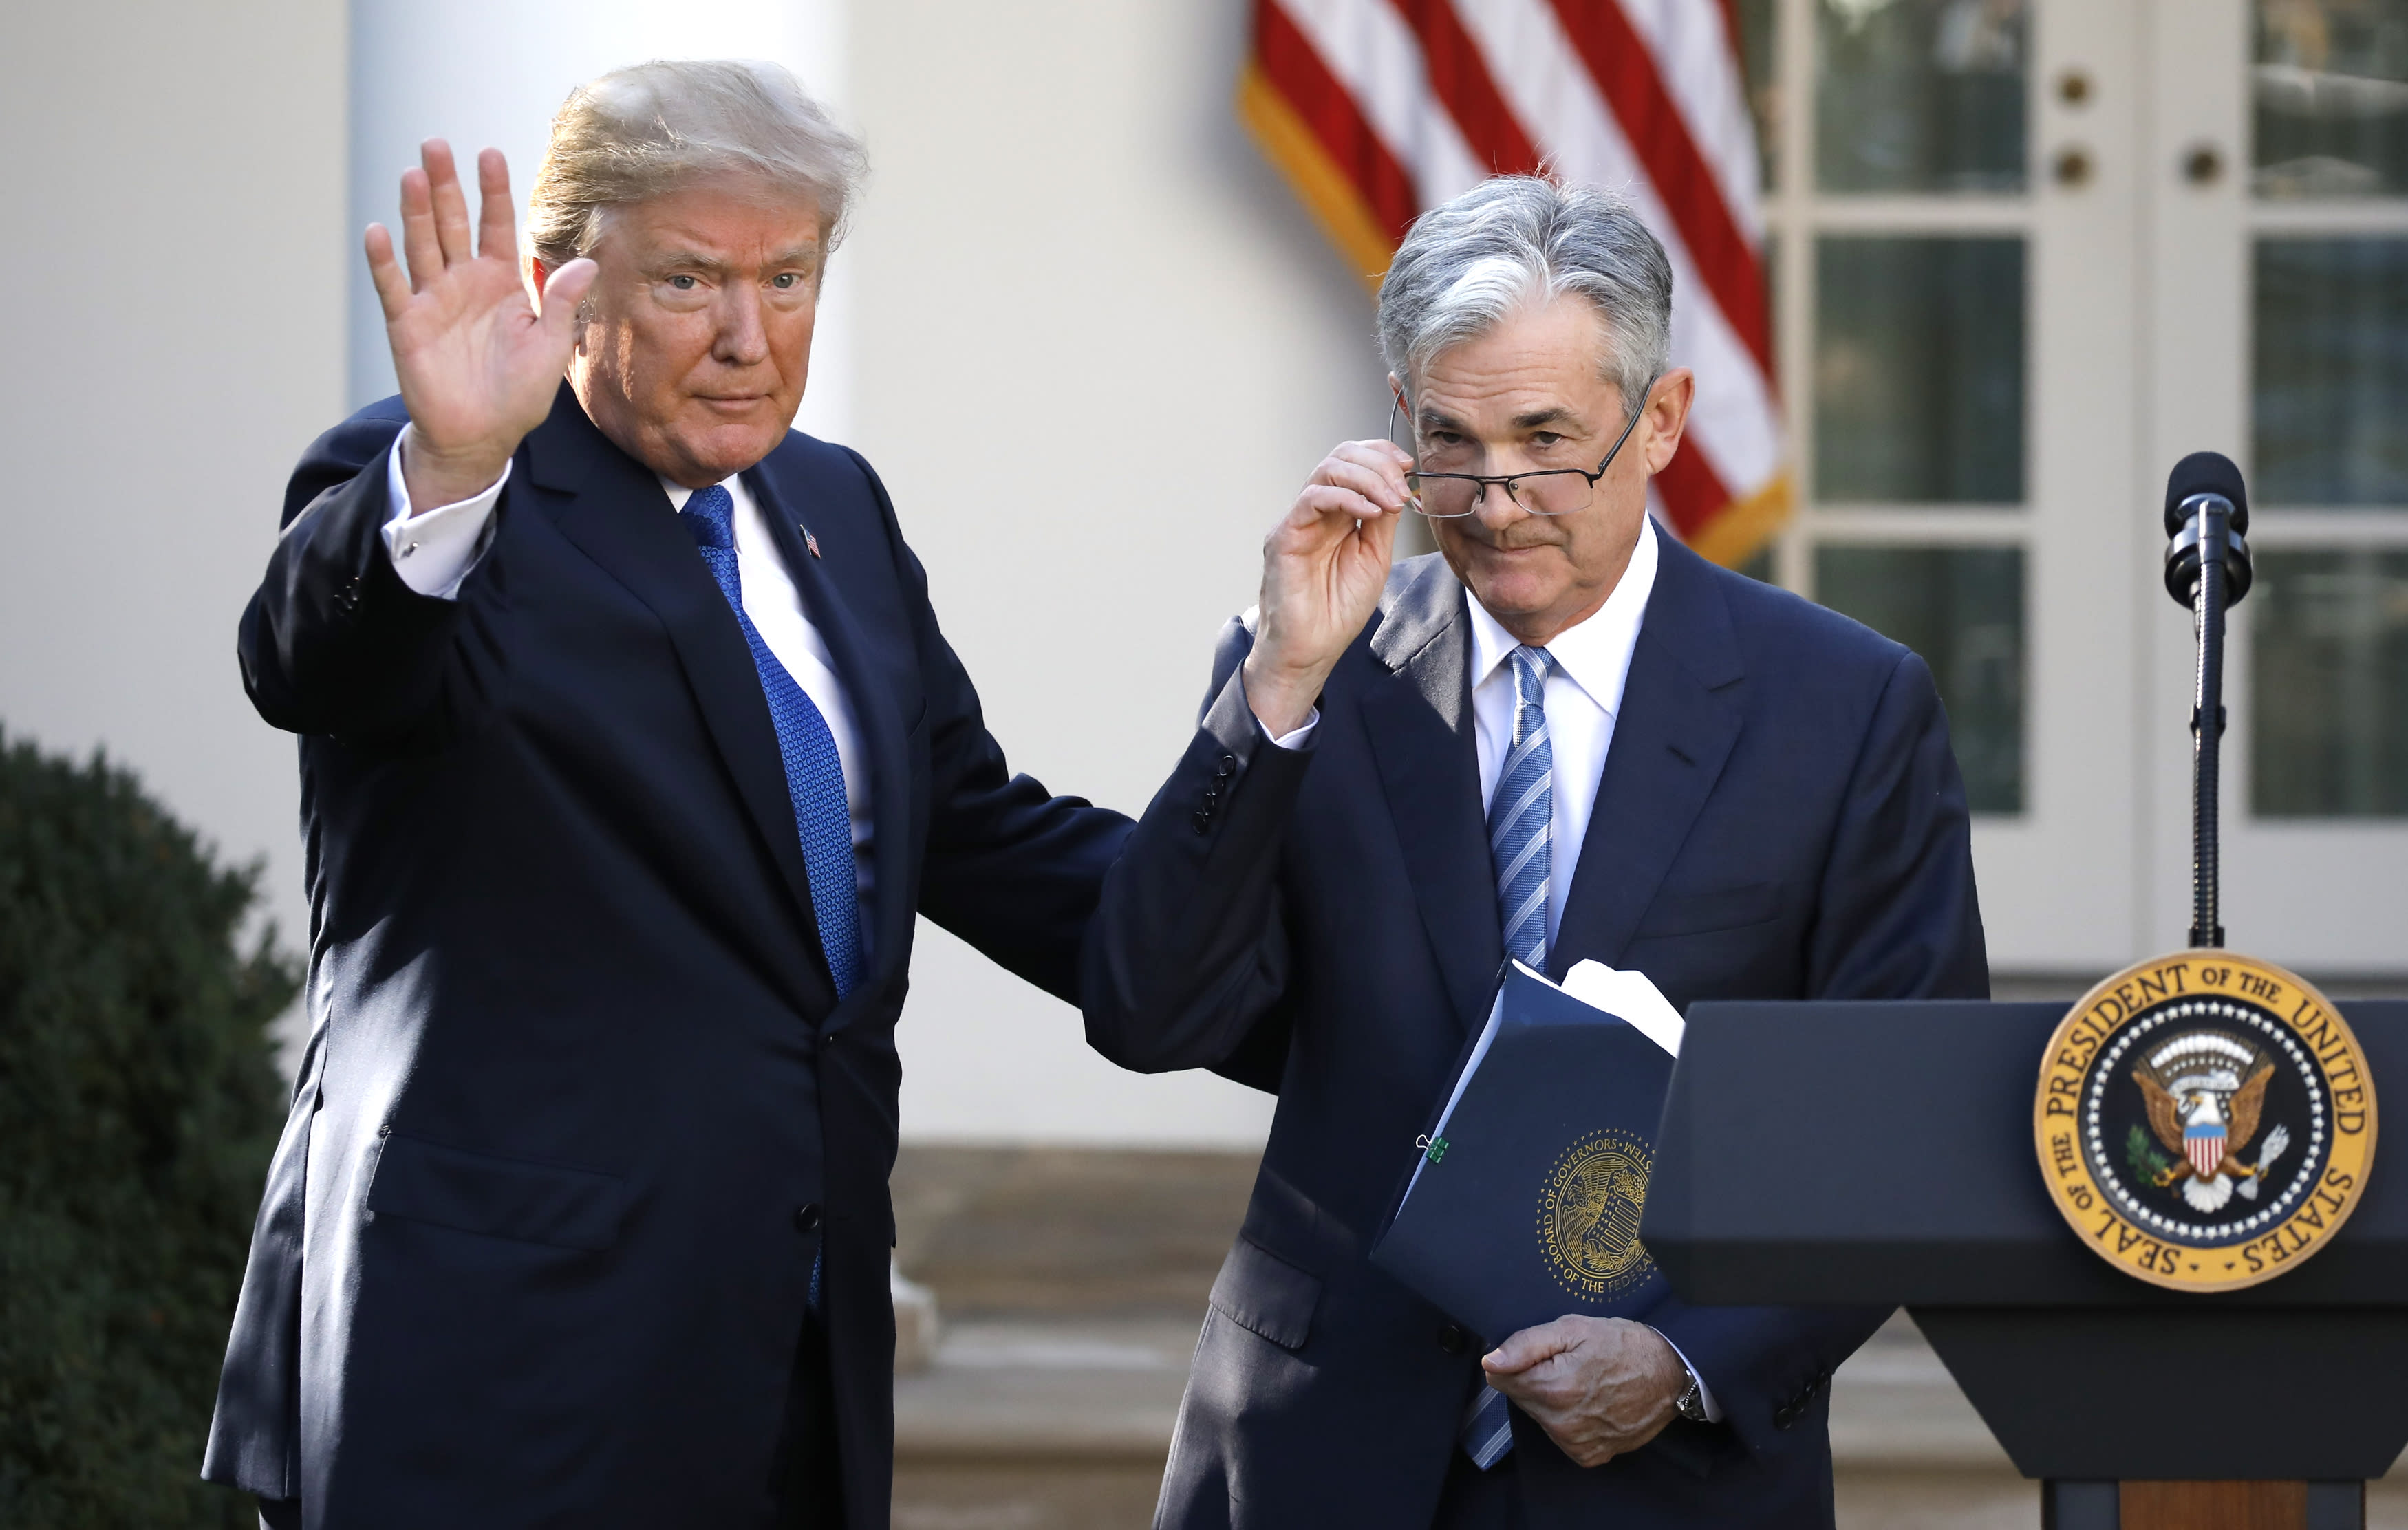 Trump says Powell has 'no guts' after Fed cuts rates